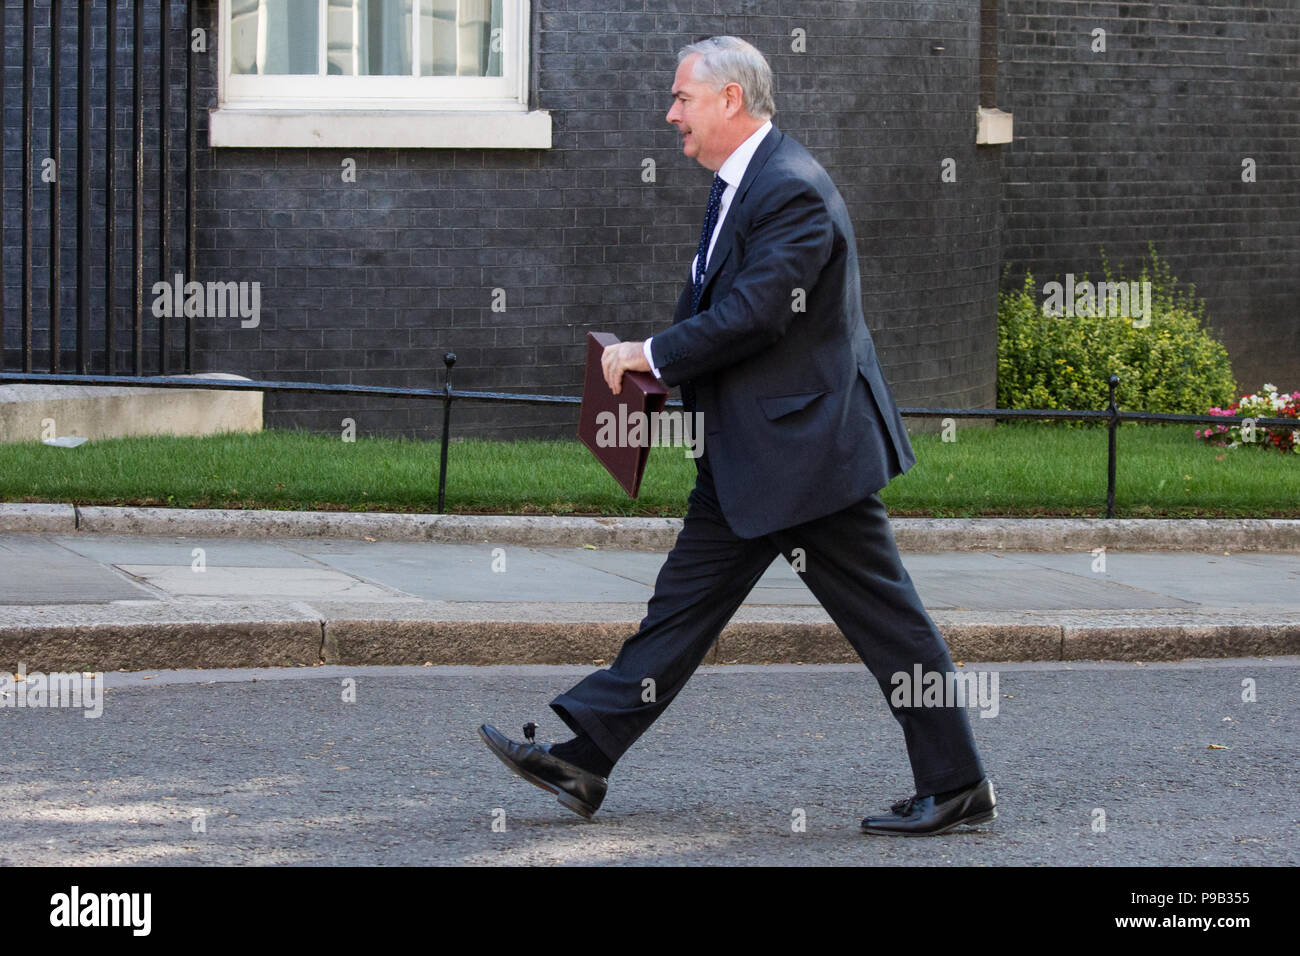 London, UK. 17th July, 2018. Geoffrey Cox QC MP, Attorney General,  arrives at 10 Downing Street for the final Cabinet meeting before the summer recess. Credit: Mark Kerrison/Alamy Live News - Stock Image